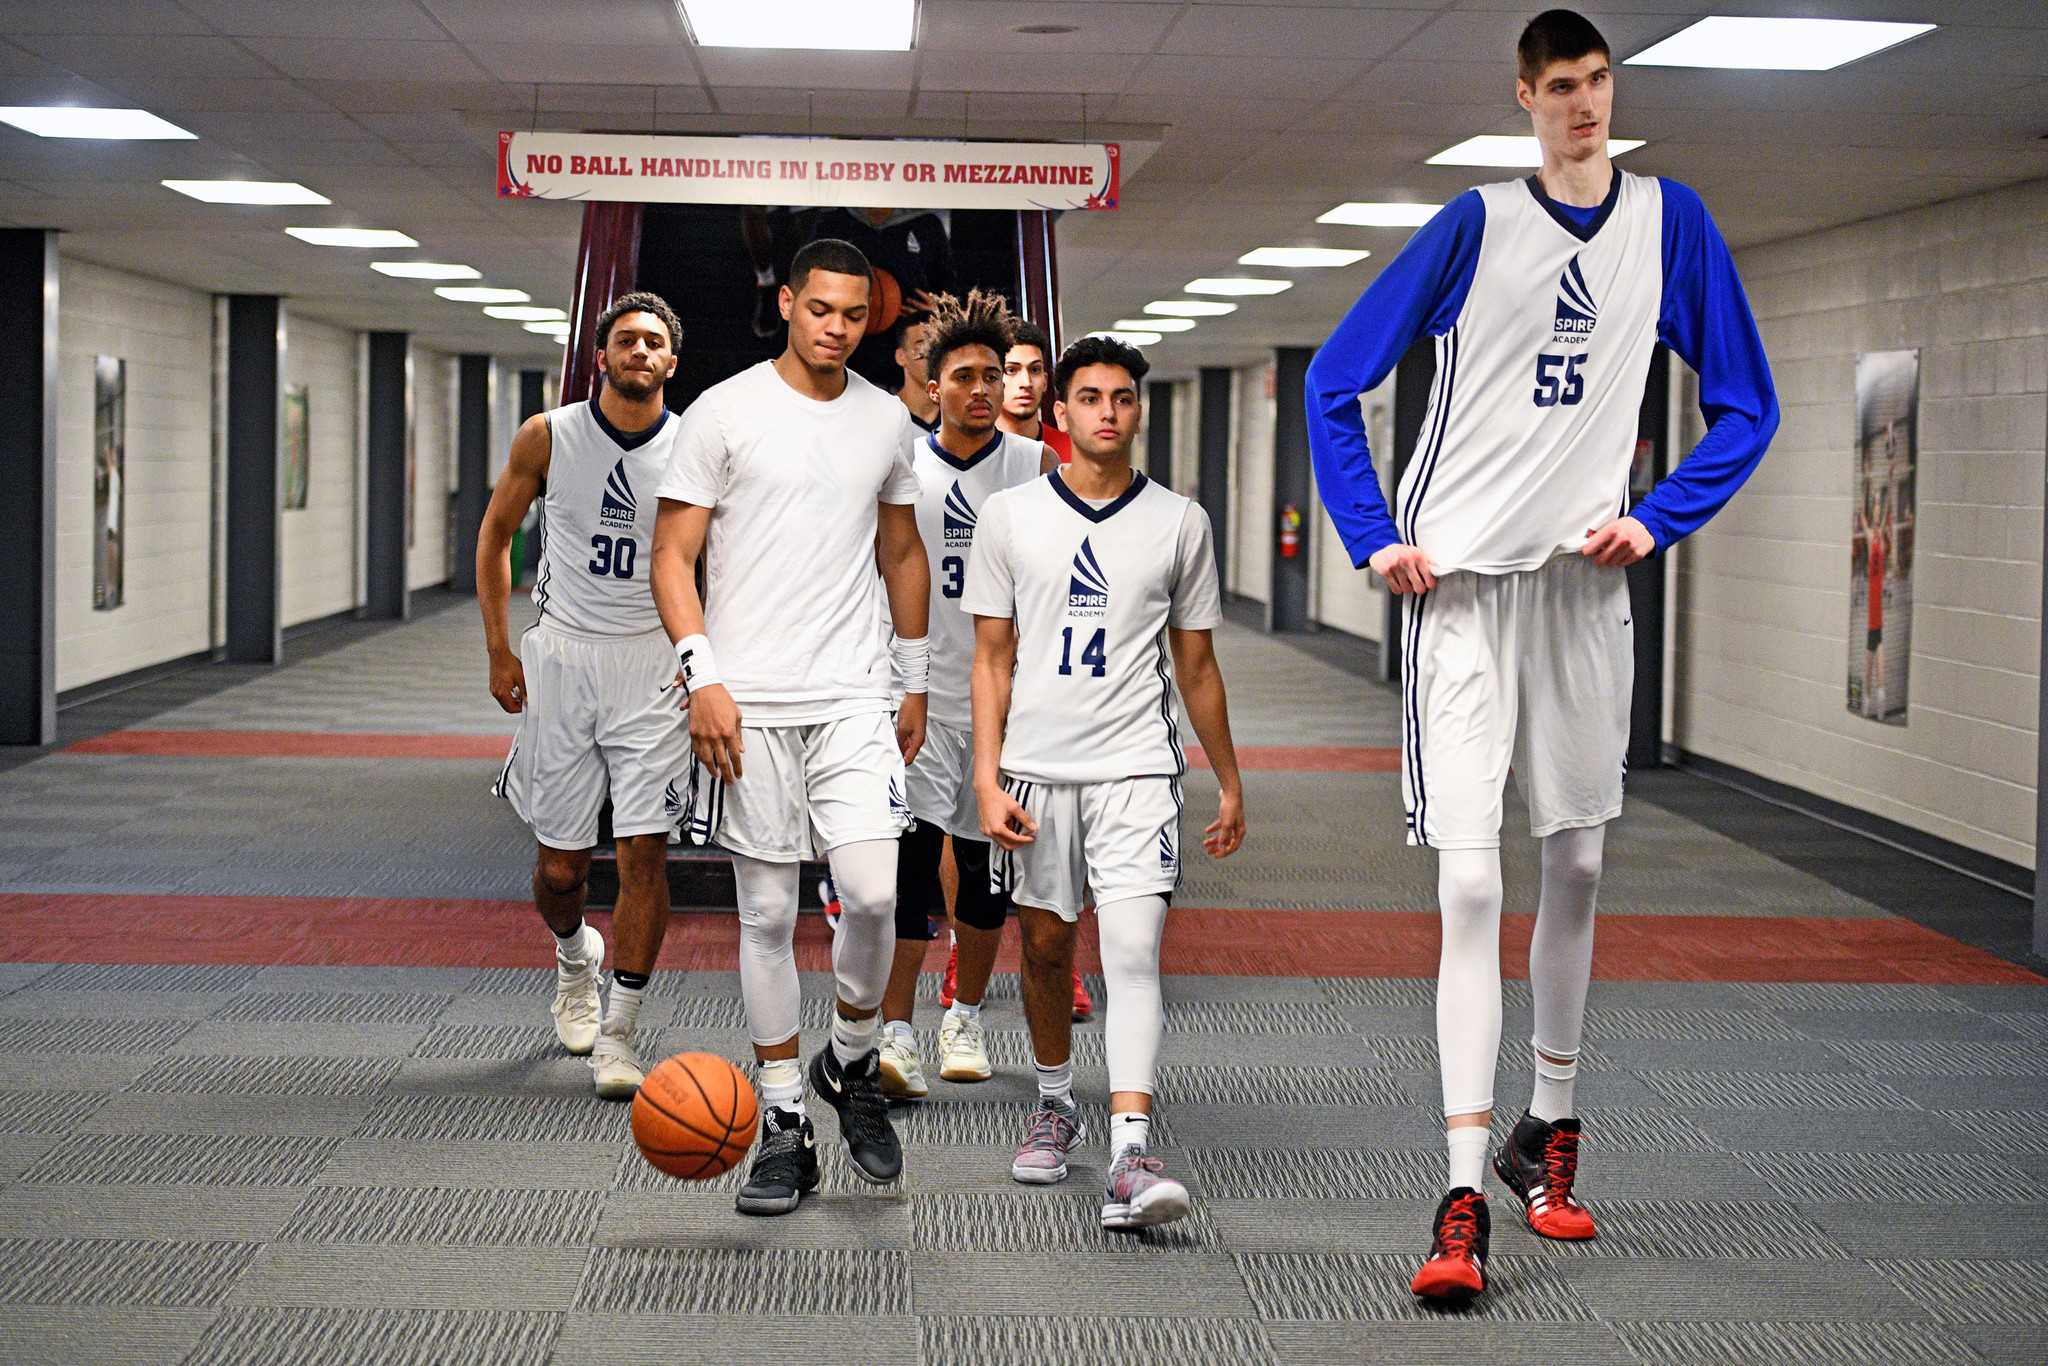 8b2adaac6a73 7-foot-7 high school basketball player a star attraction despite rarely  playing